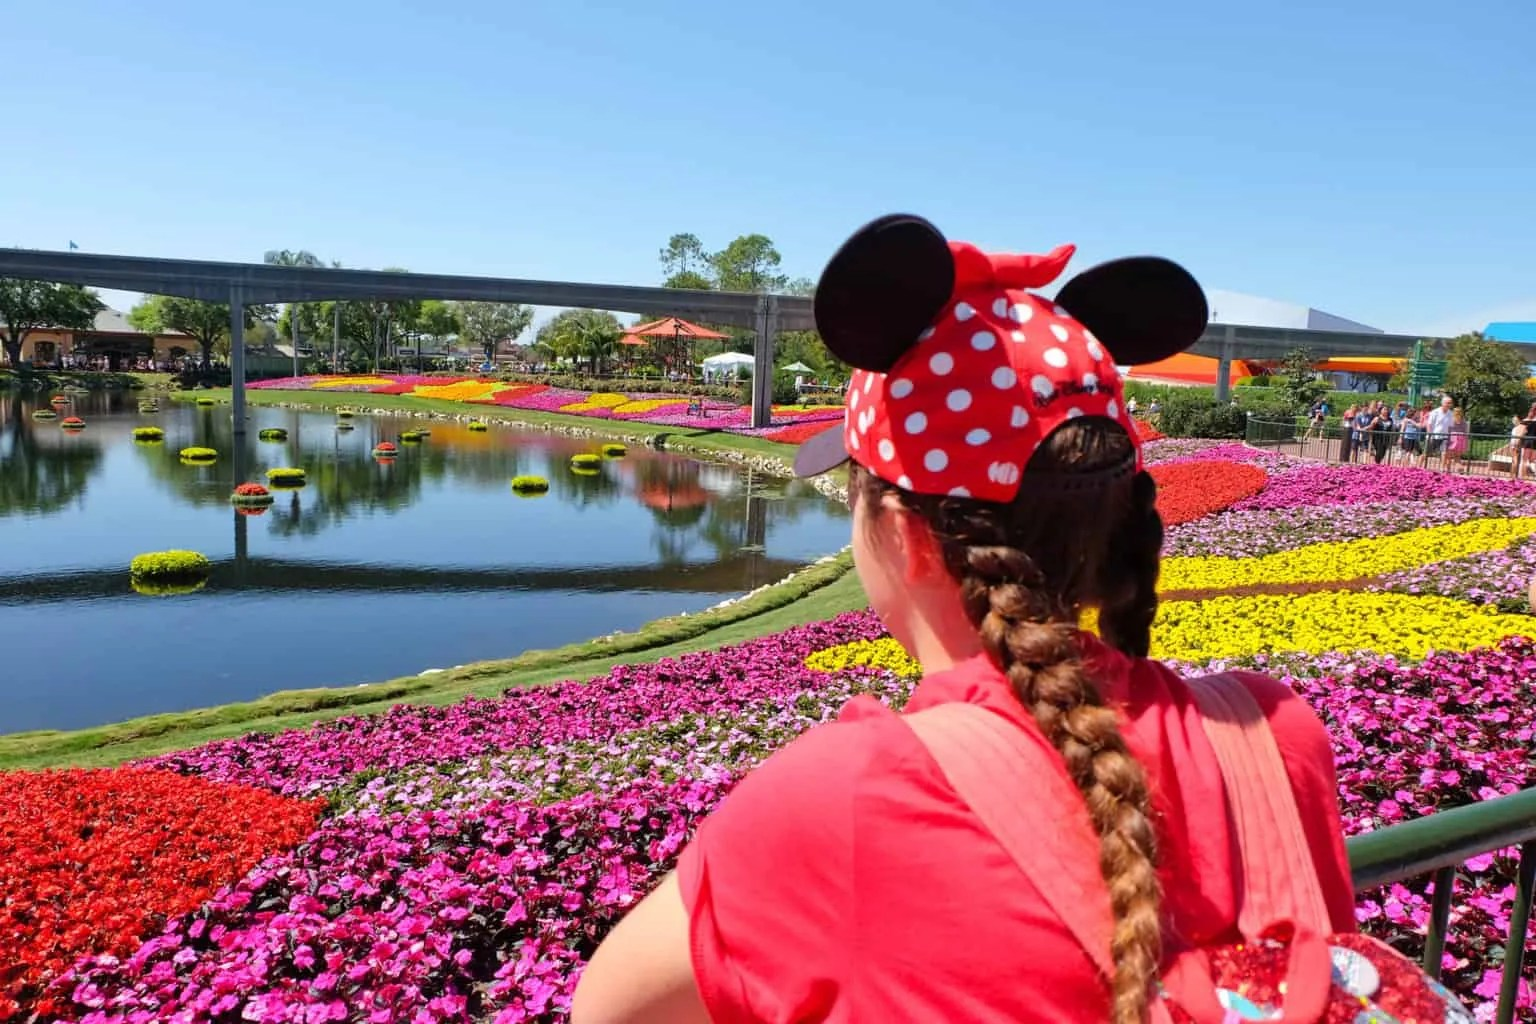 How to Plan A Walt Disney World Vacation: The Basics